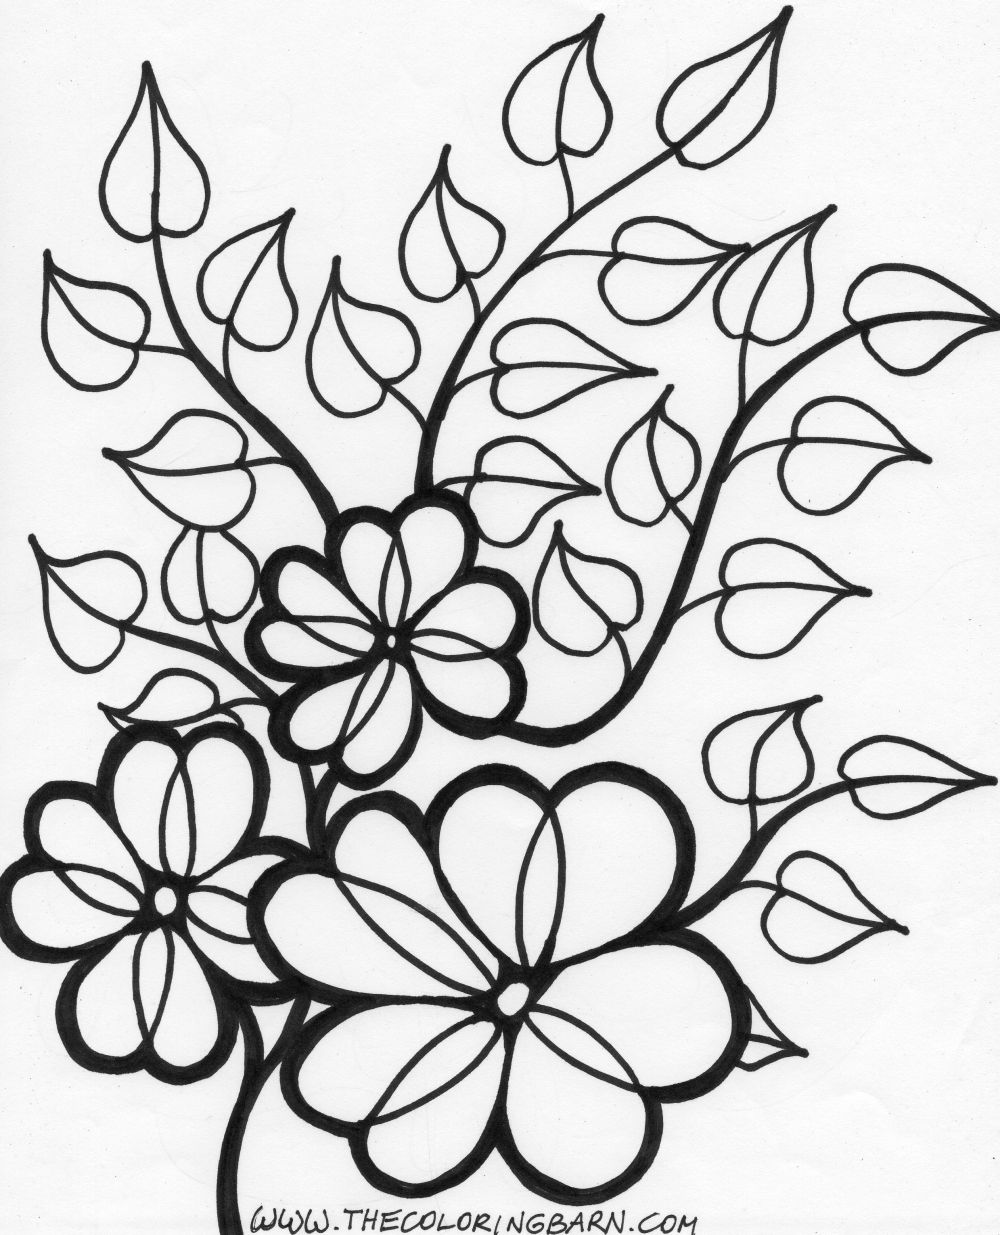 1000x1235 Perspective Single Flower Coloring Pages Best Outline For Kids